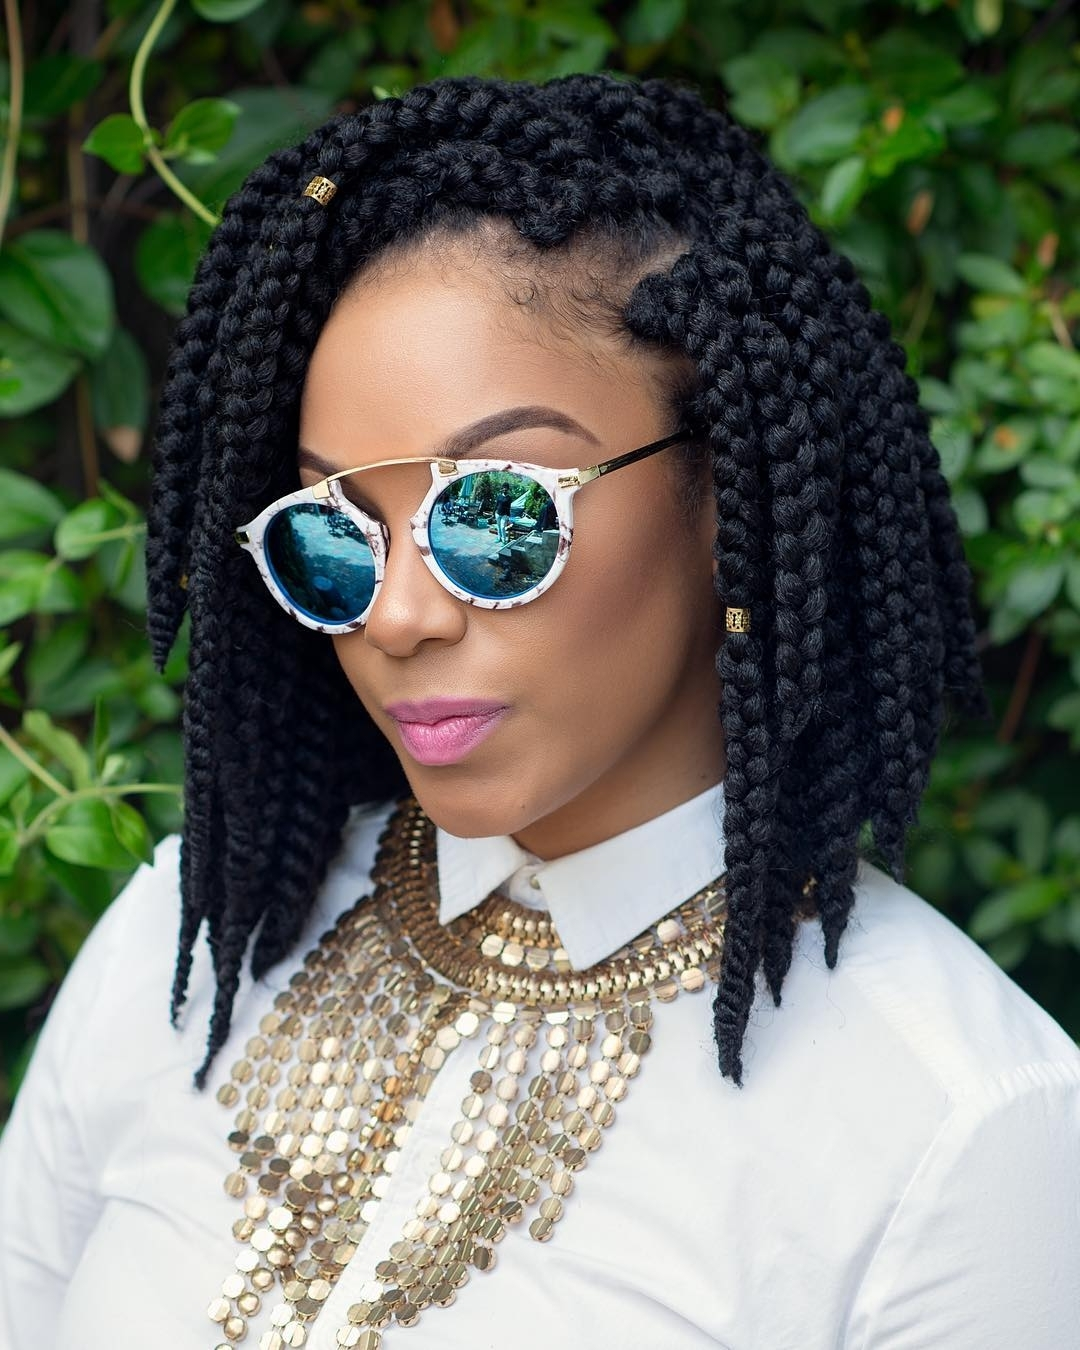 80 Trendy African Braids Hairstyles – Embrace The Braiding Art Regarding Well Known African Braided Hairstyles (Gallery 13 of 15)